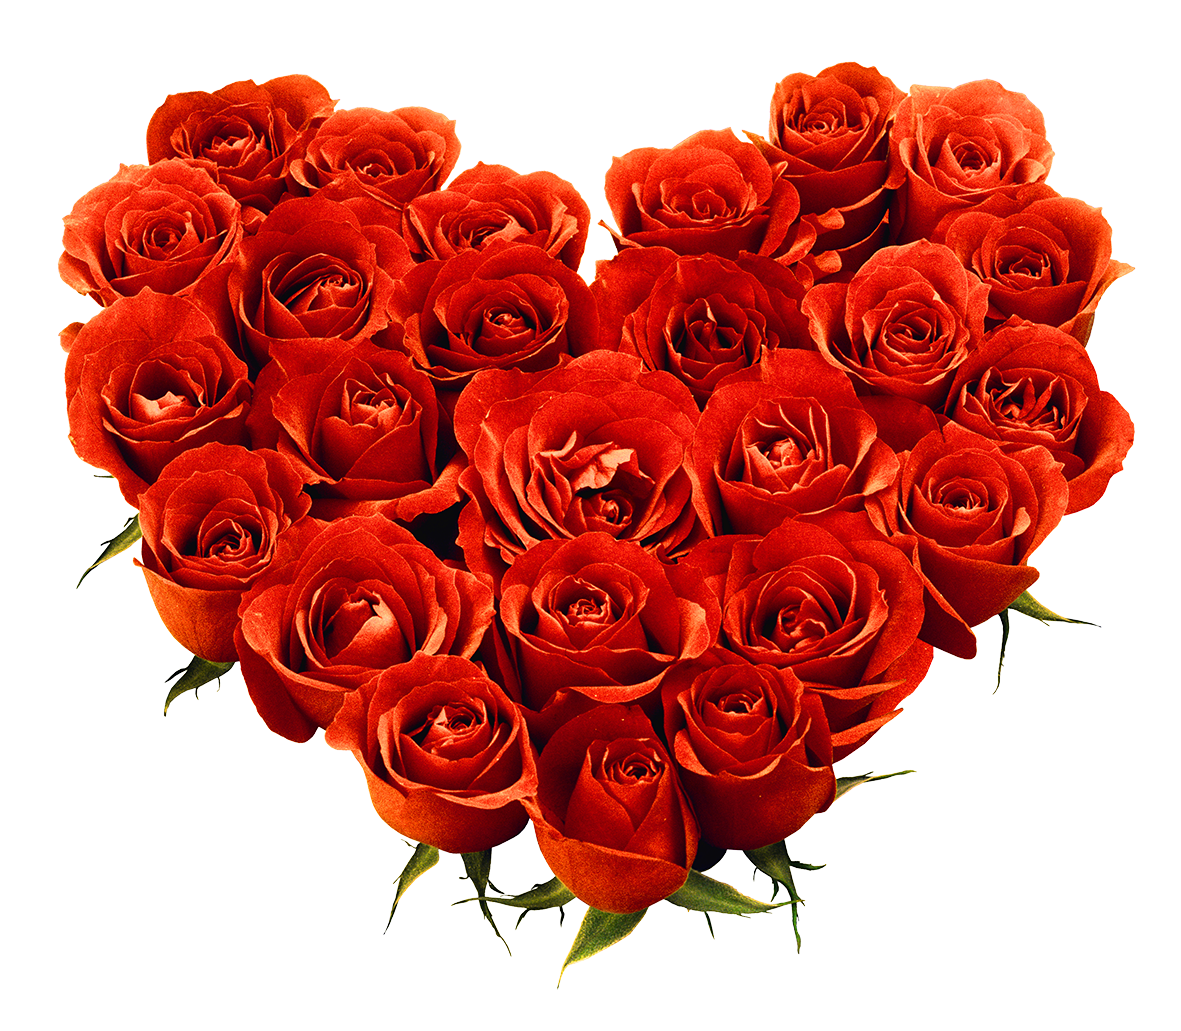 Bouquet of roses png hd transparent bouquet of roses hd - Bouquet of red roses hd images ...